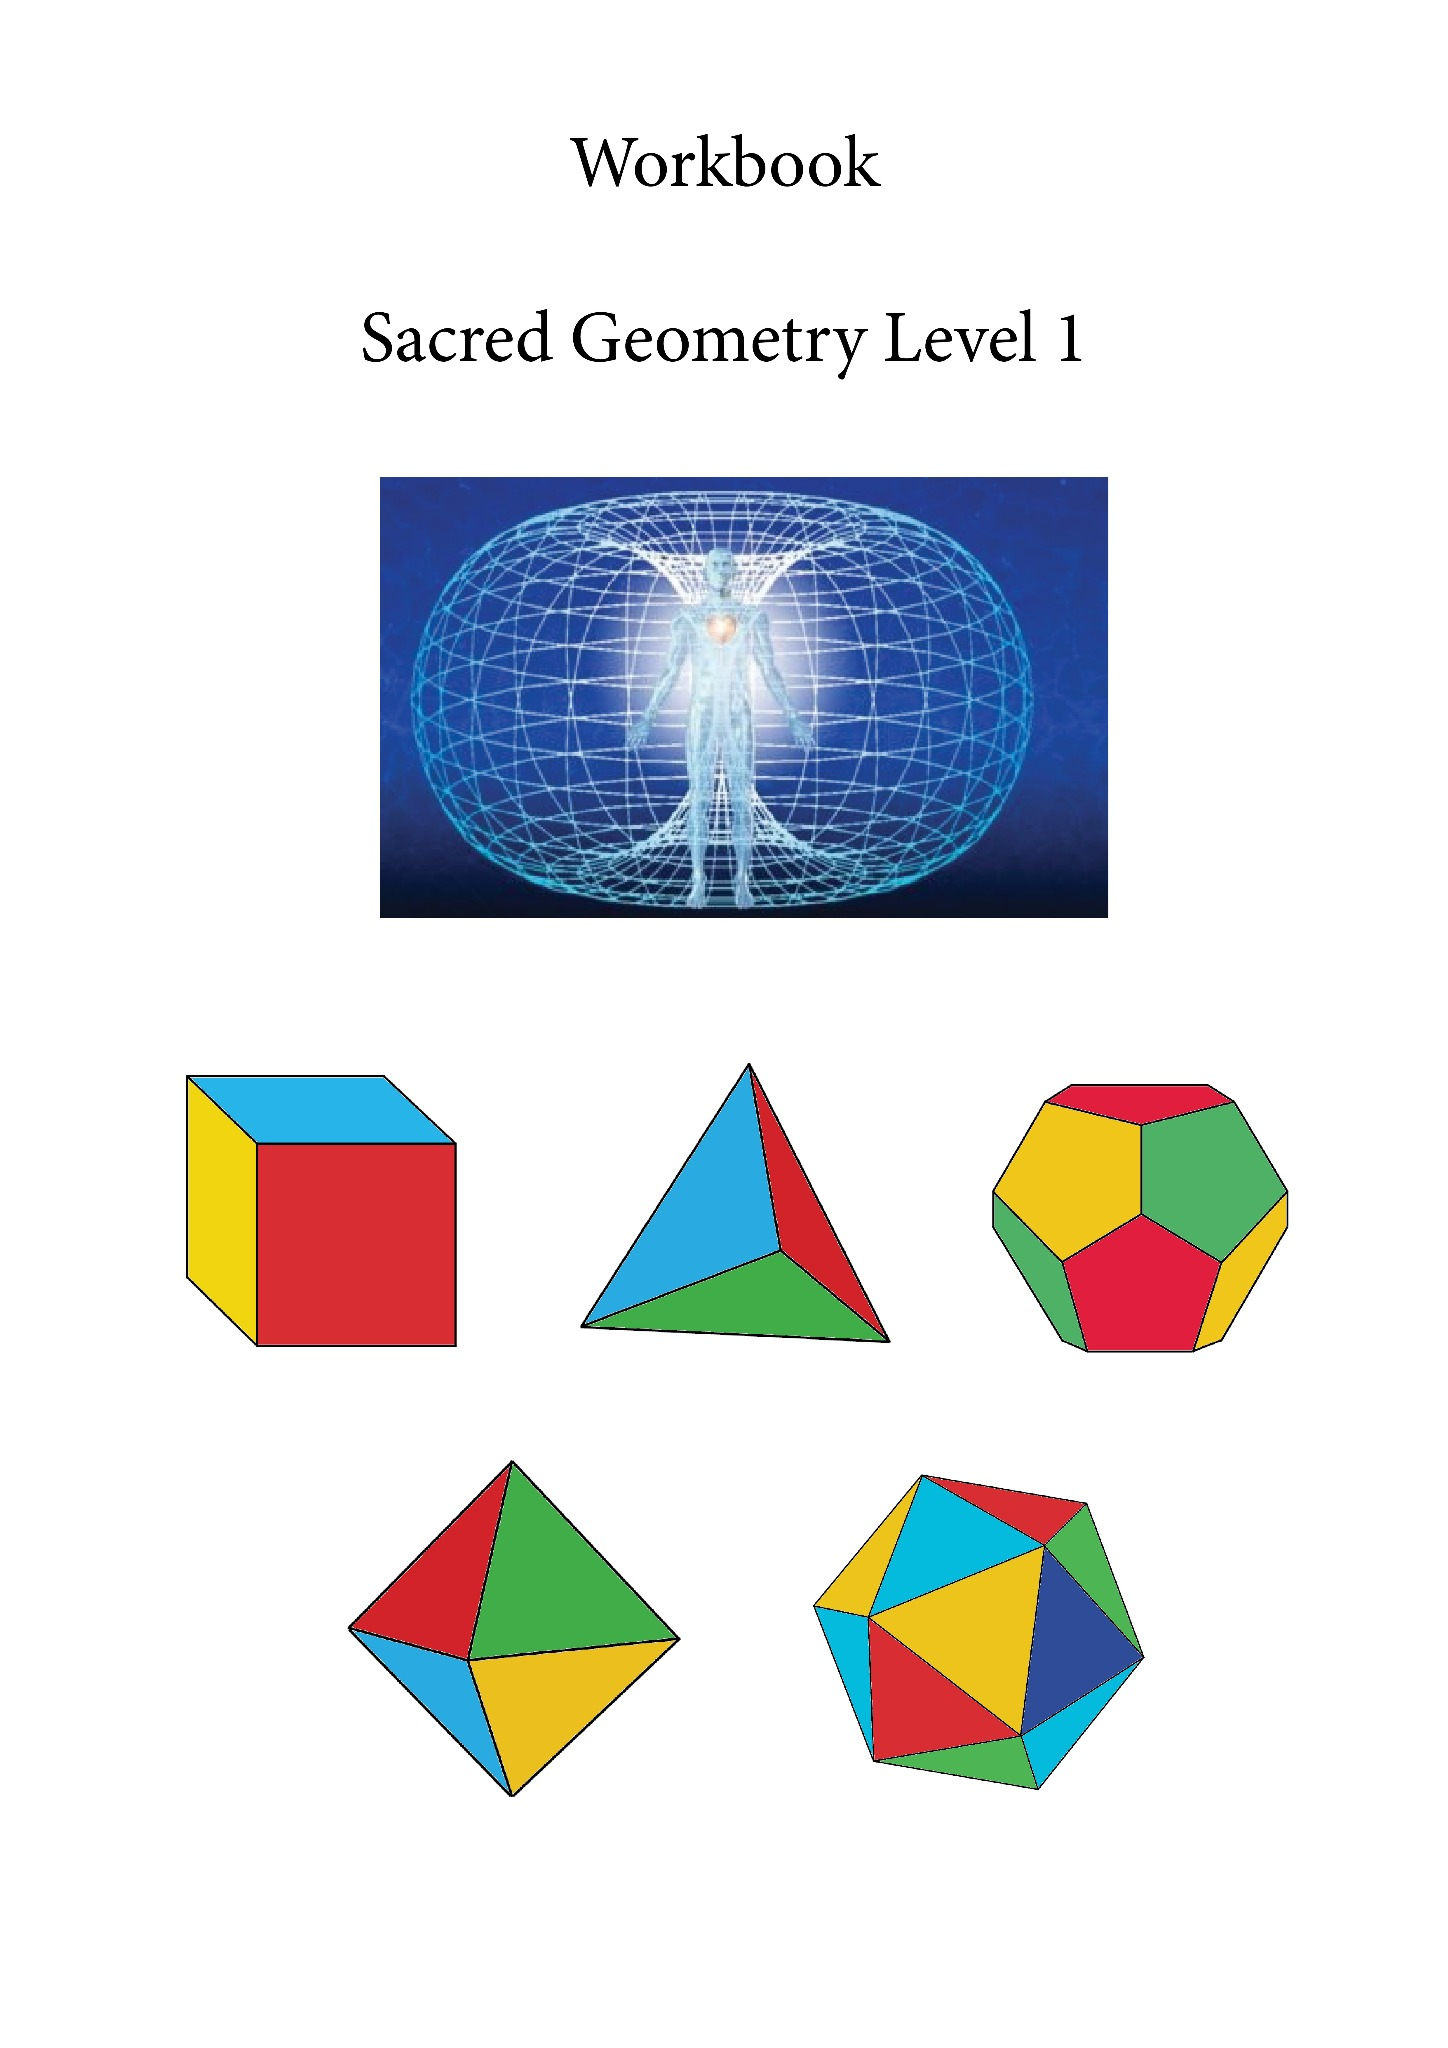 Class 1 : An application to the natural Healing Frequencies, Fibonacci Spiral and Platonic Solids.